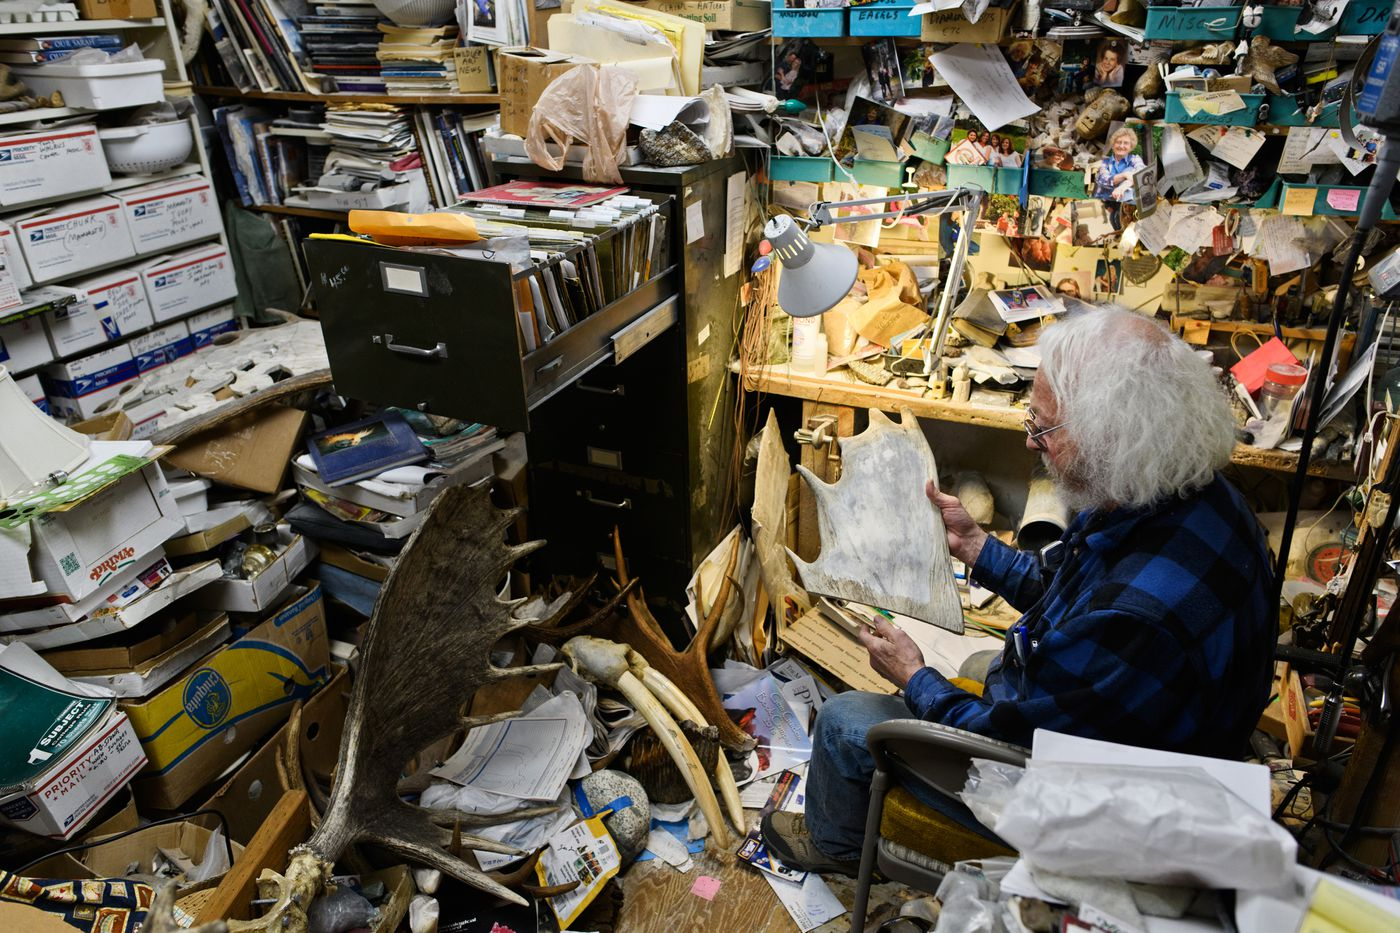 Tom Cooper's carving room is filled with items from decades of operating Alaska Horn and Antler on the Sterling Highway in Soldotna. (Marc Lester / ADN)